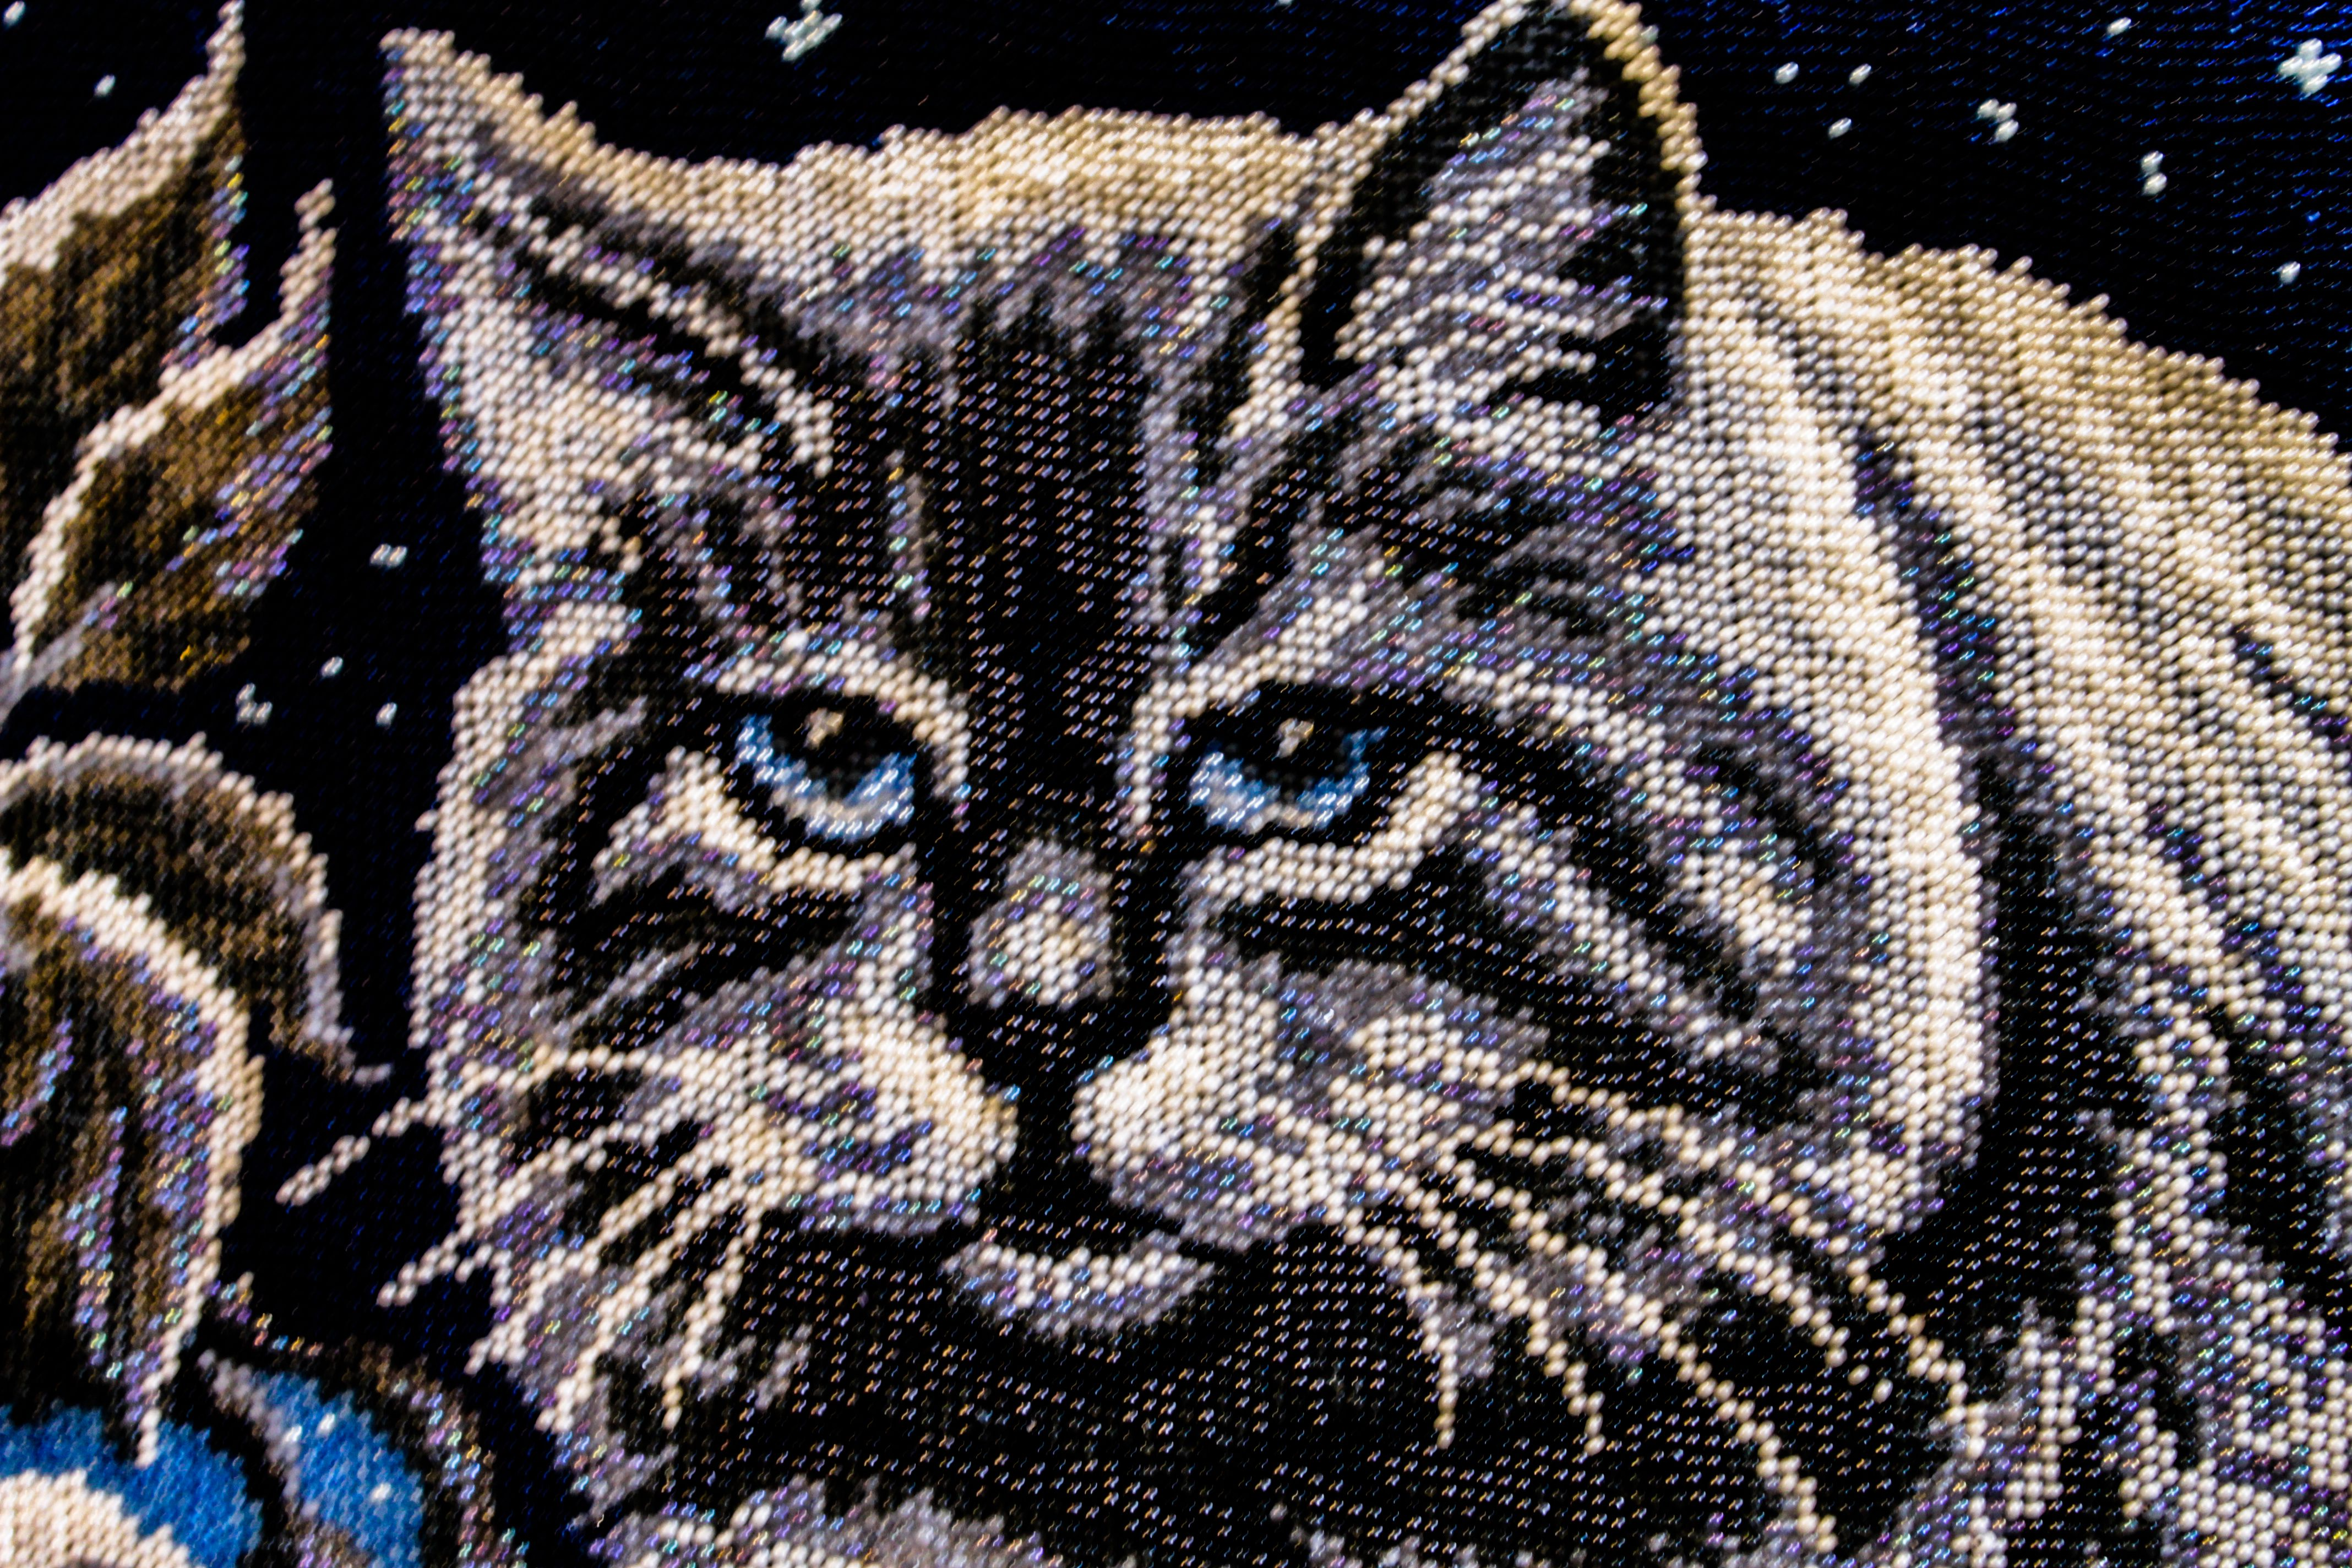 embroidery new year buy картина picture вышивкабисером beads cat beadwork art вышитая gift beauty embroidered combined moon beaded animals bead birthday present for вышивка